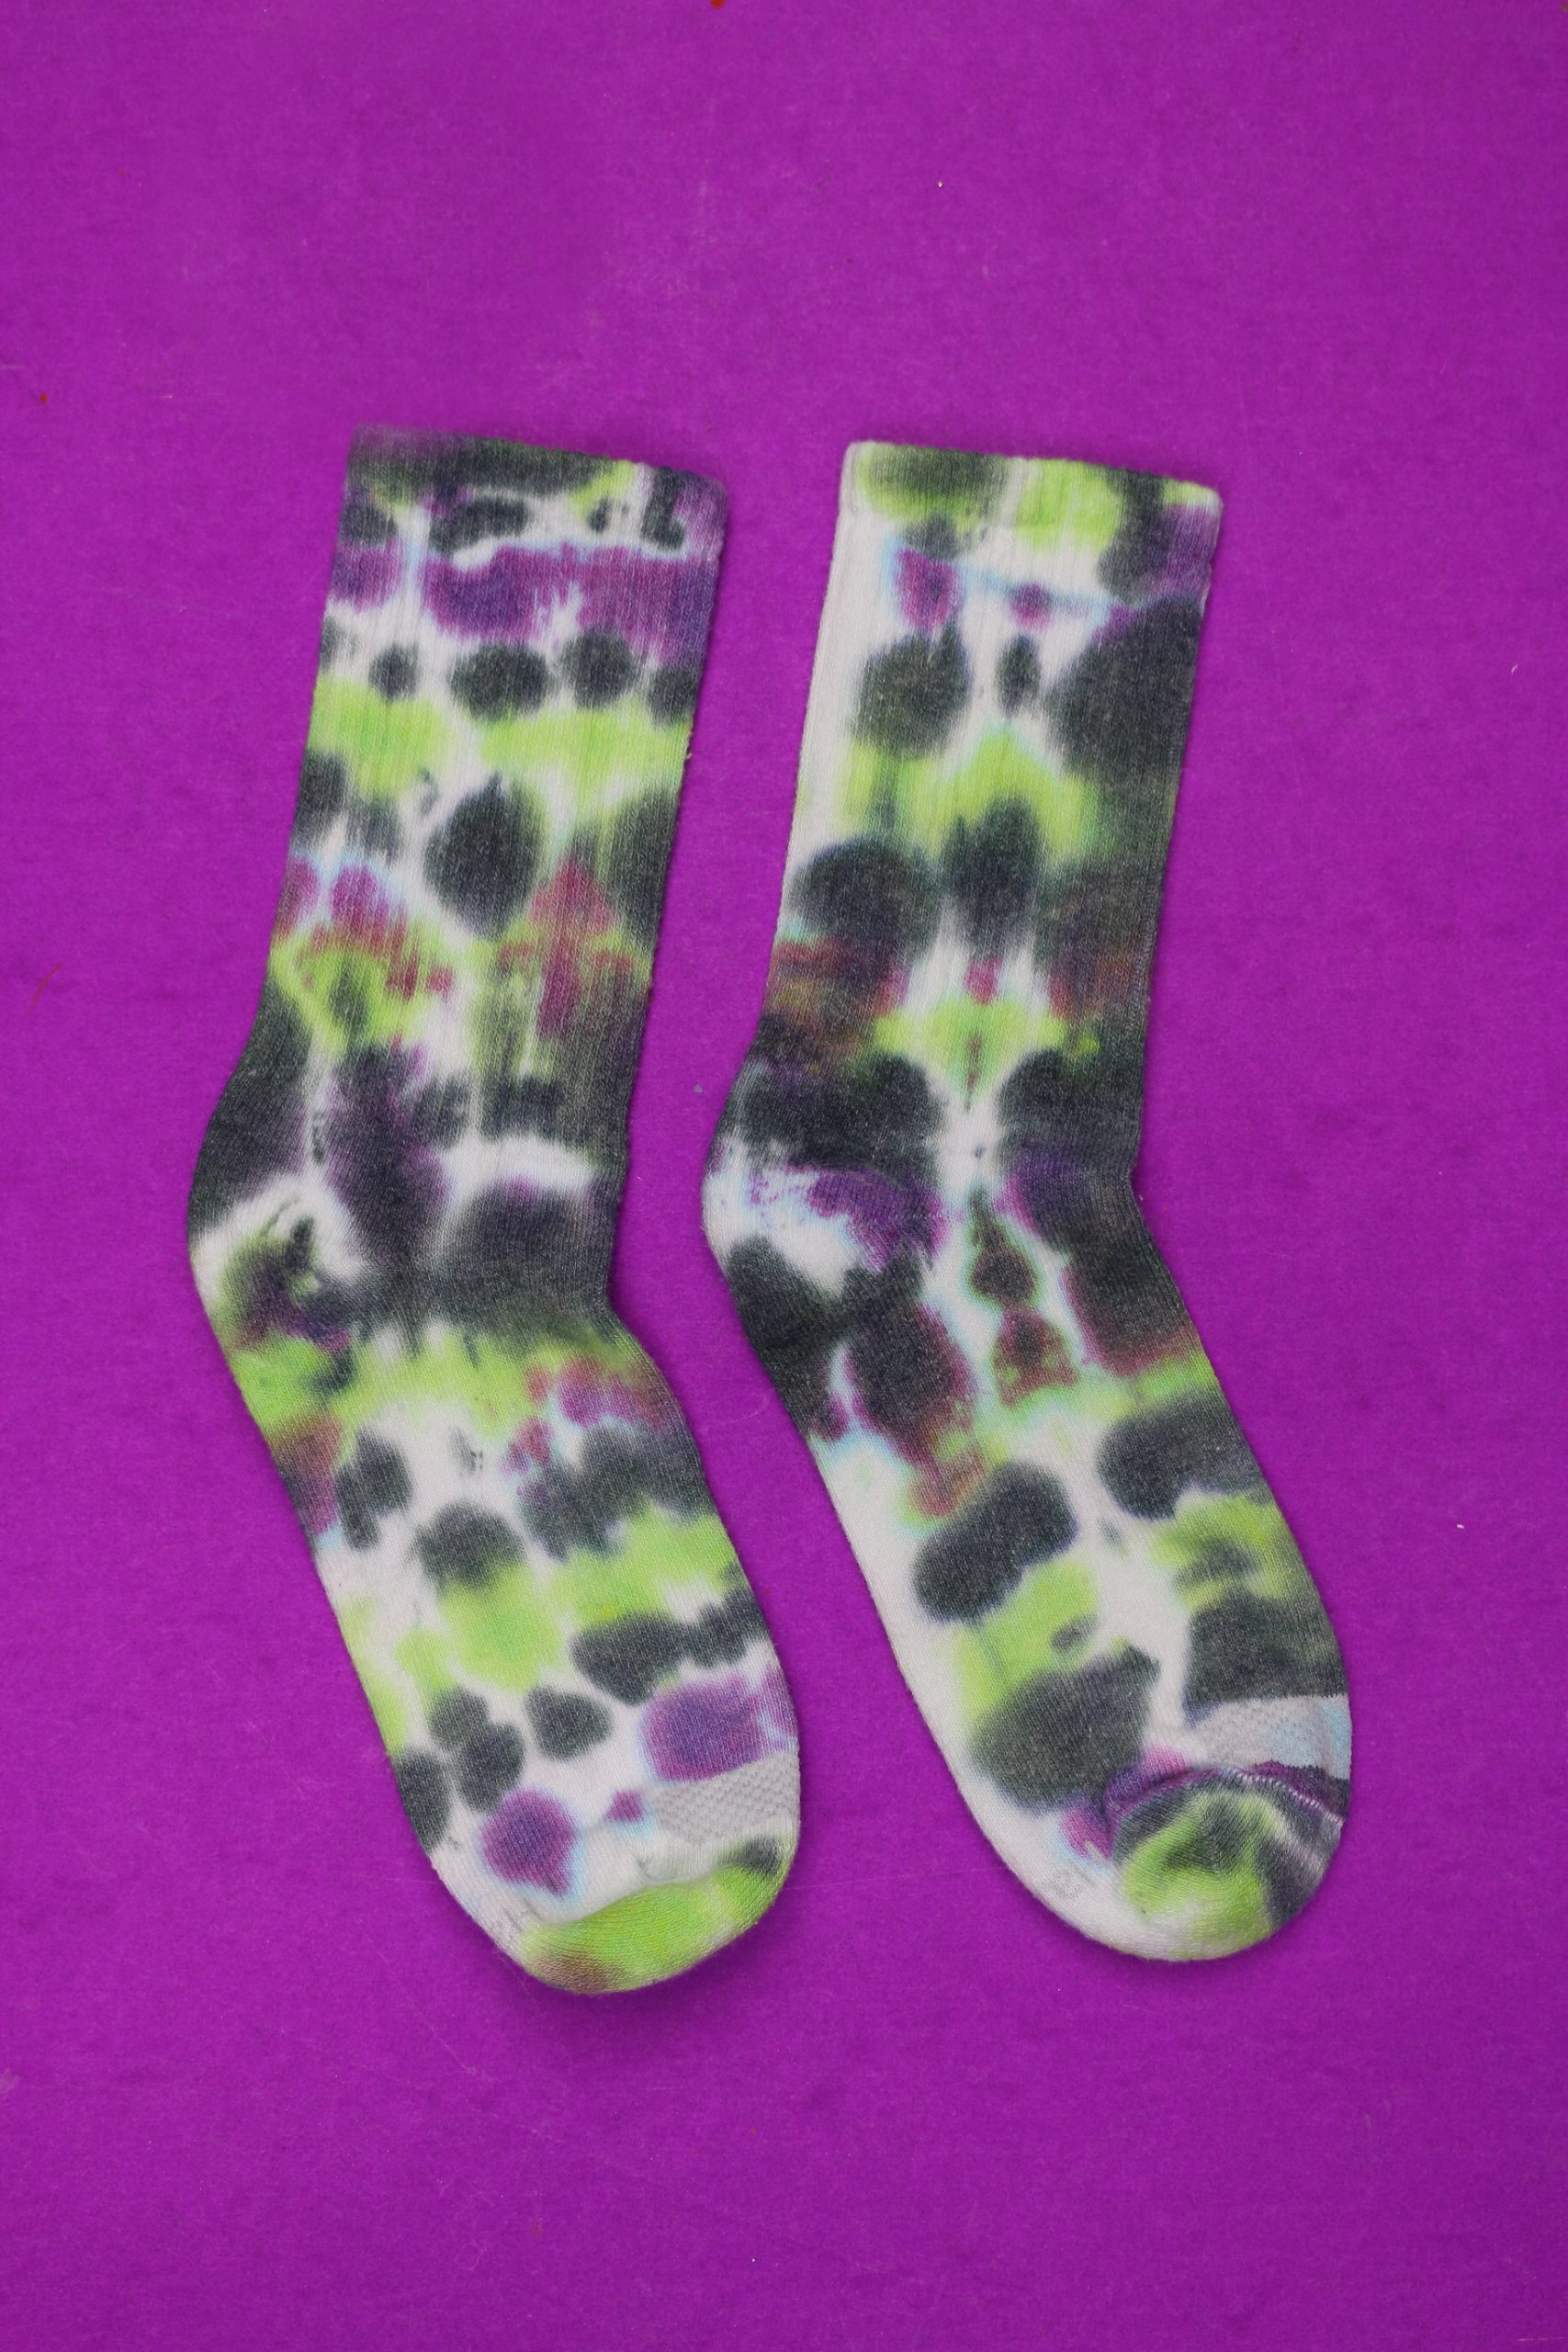 tie dyed socks on a purple background